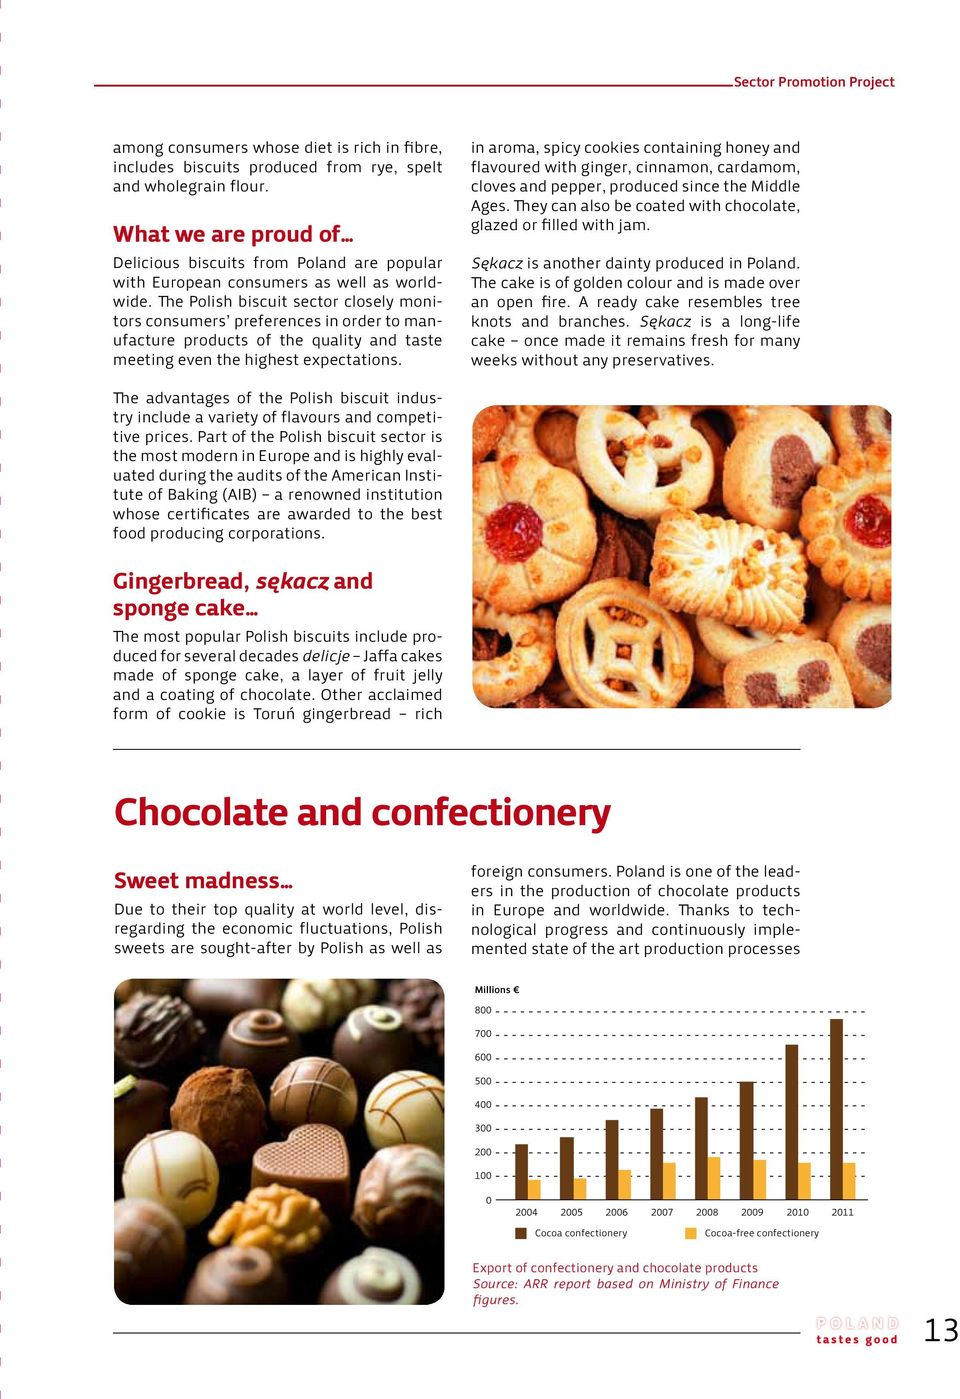 The Polish biscuit sector closely monitors consumers preferences in order to manufacture products of the quality and taste meeting even the highest expectations.